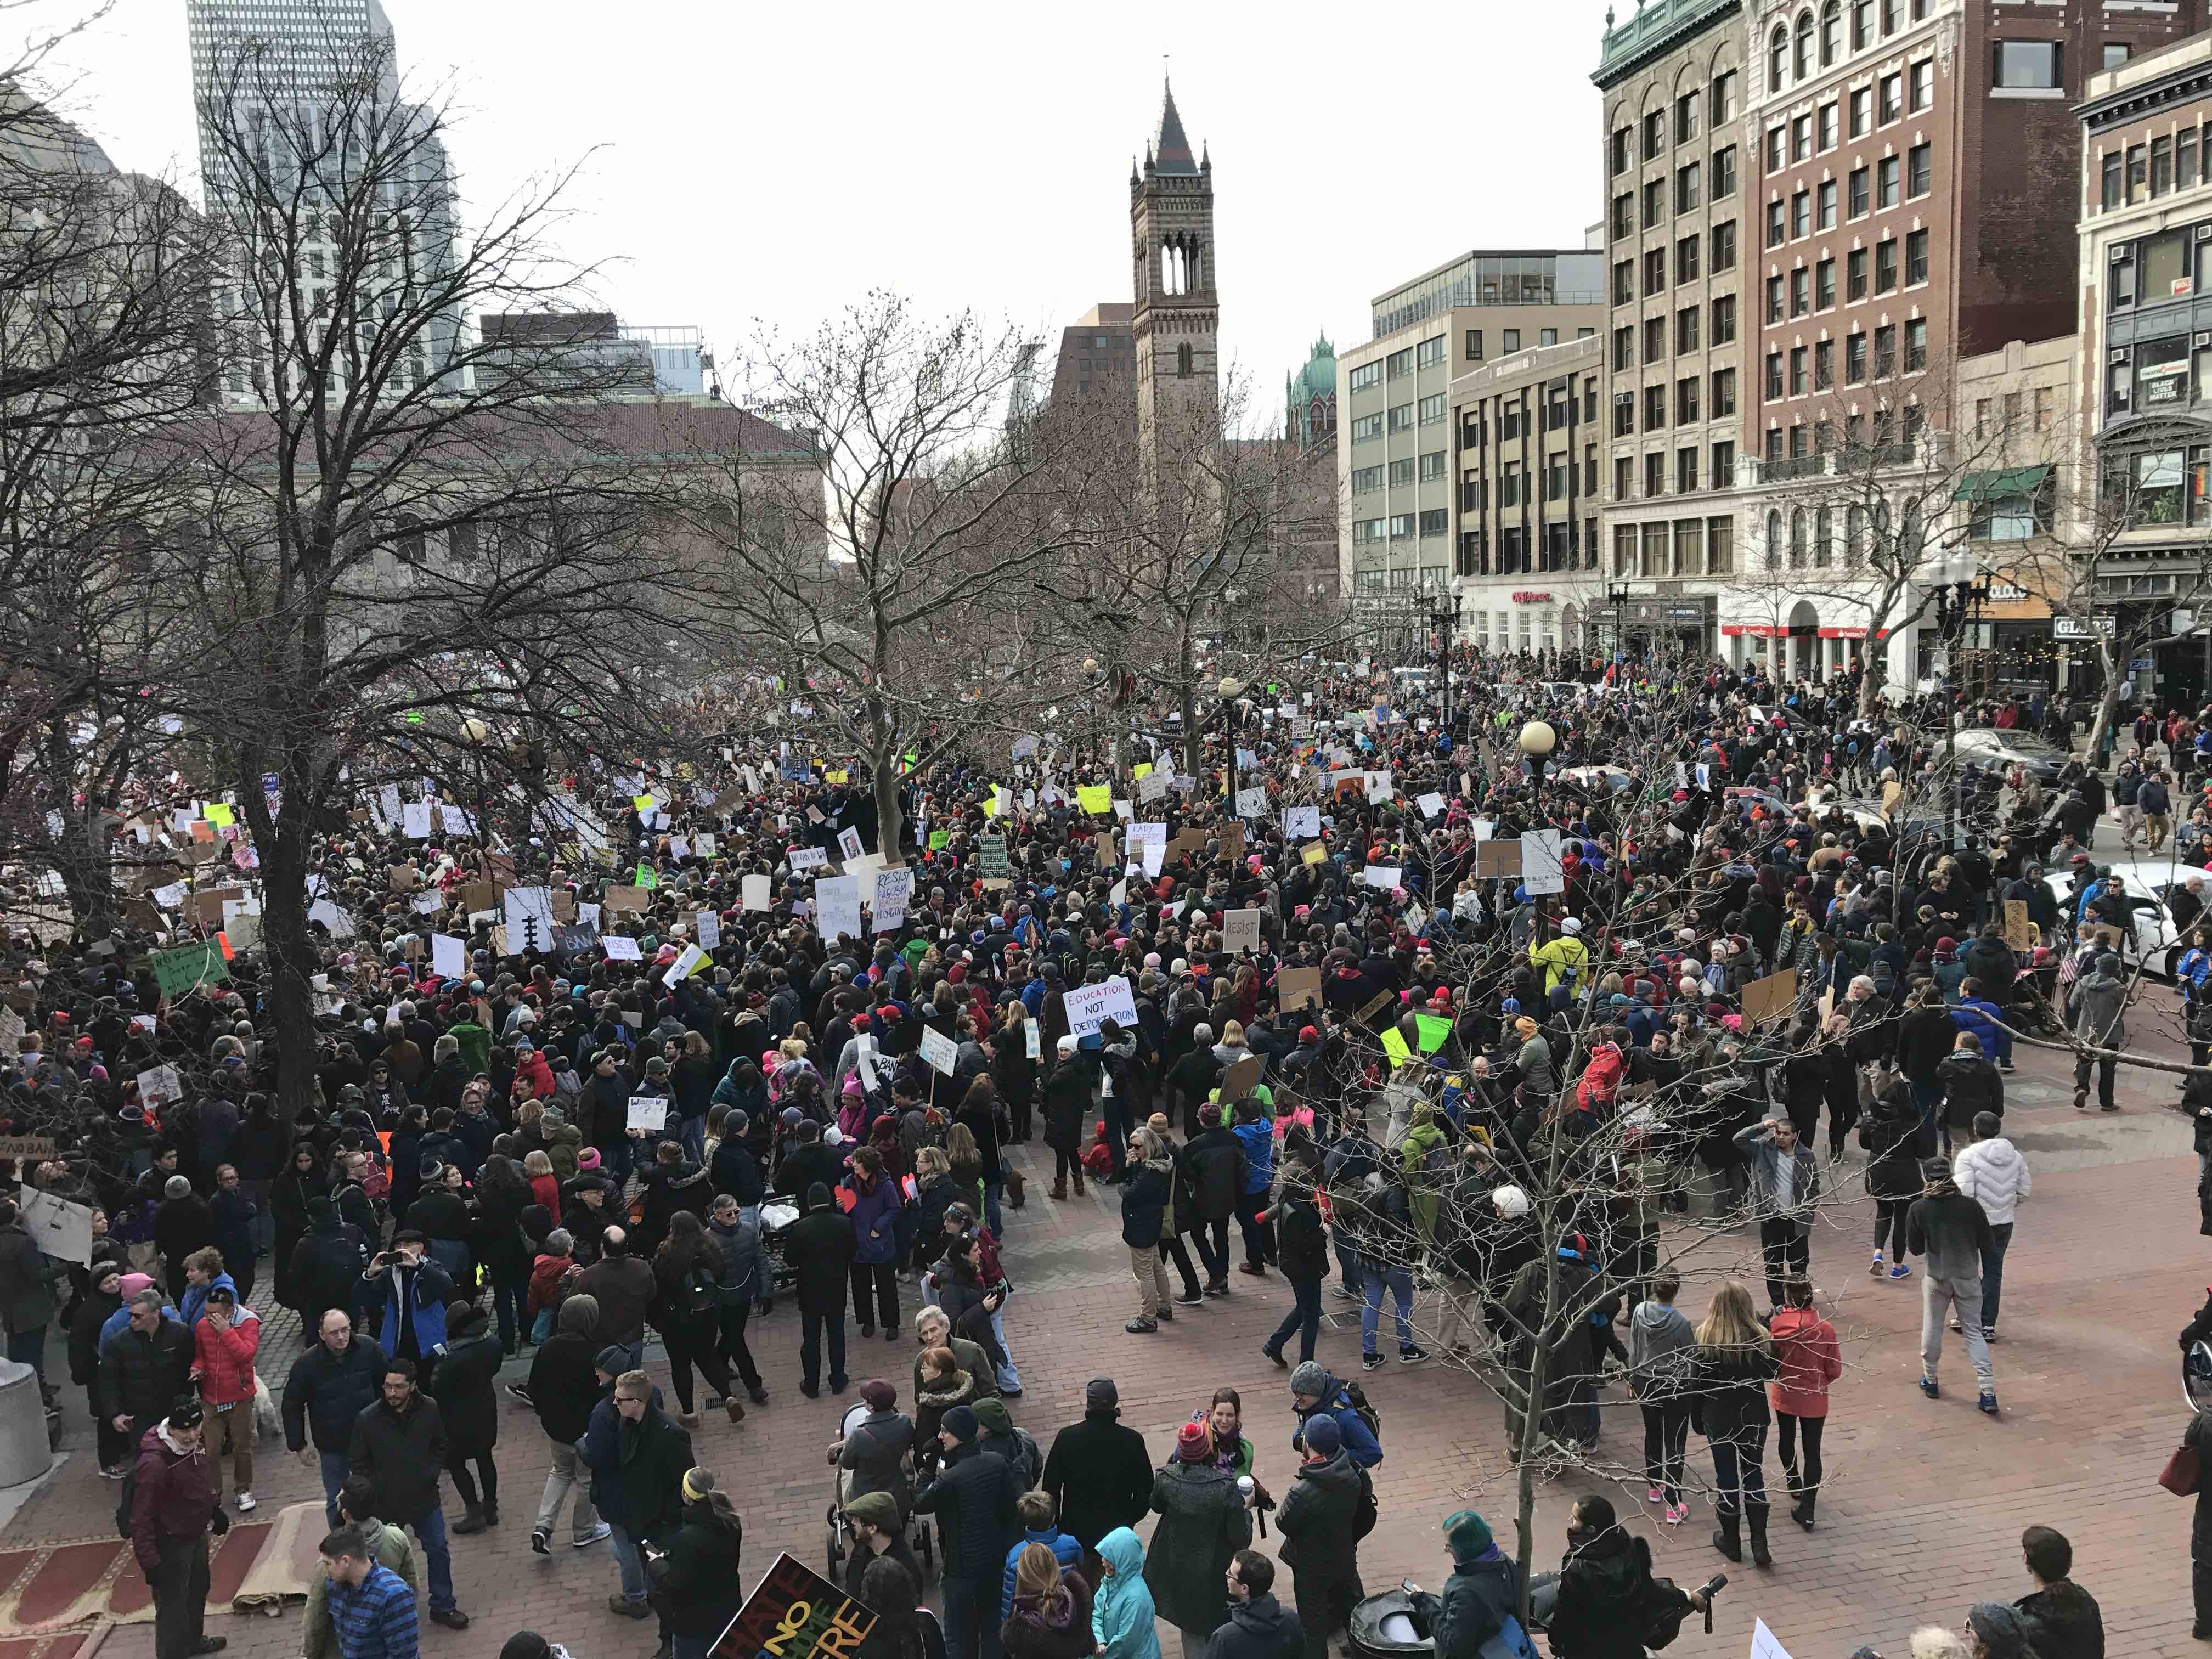 Protesters congregate in Copley Square Sunday, Jan. 29 to protest the immigration ban imposed by President Trump that denies people from seven majority Muslim countries to enter the United States.